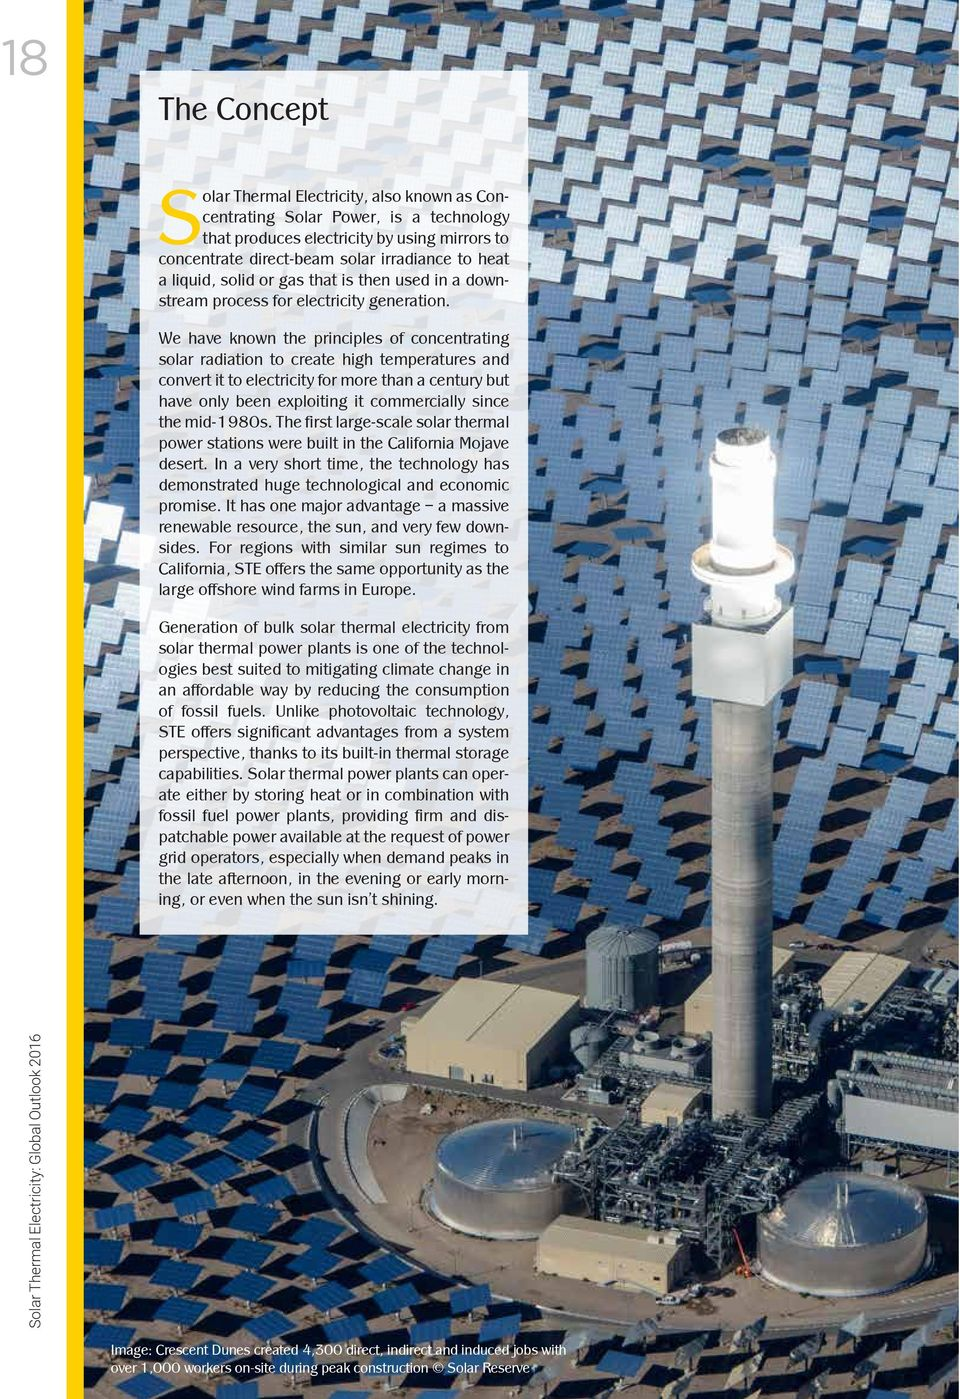 We have known the principles of concentrating solar radiation to create high temperatures and convert it to electricity for more than a century but have only been exploiting it commercially since the